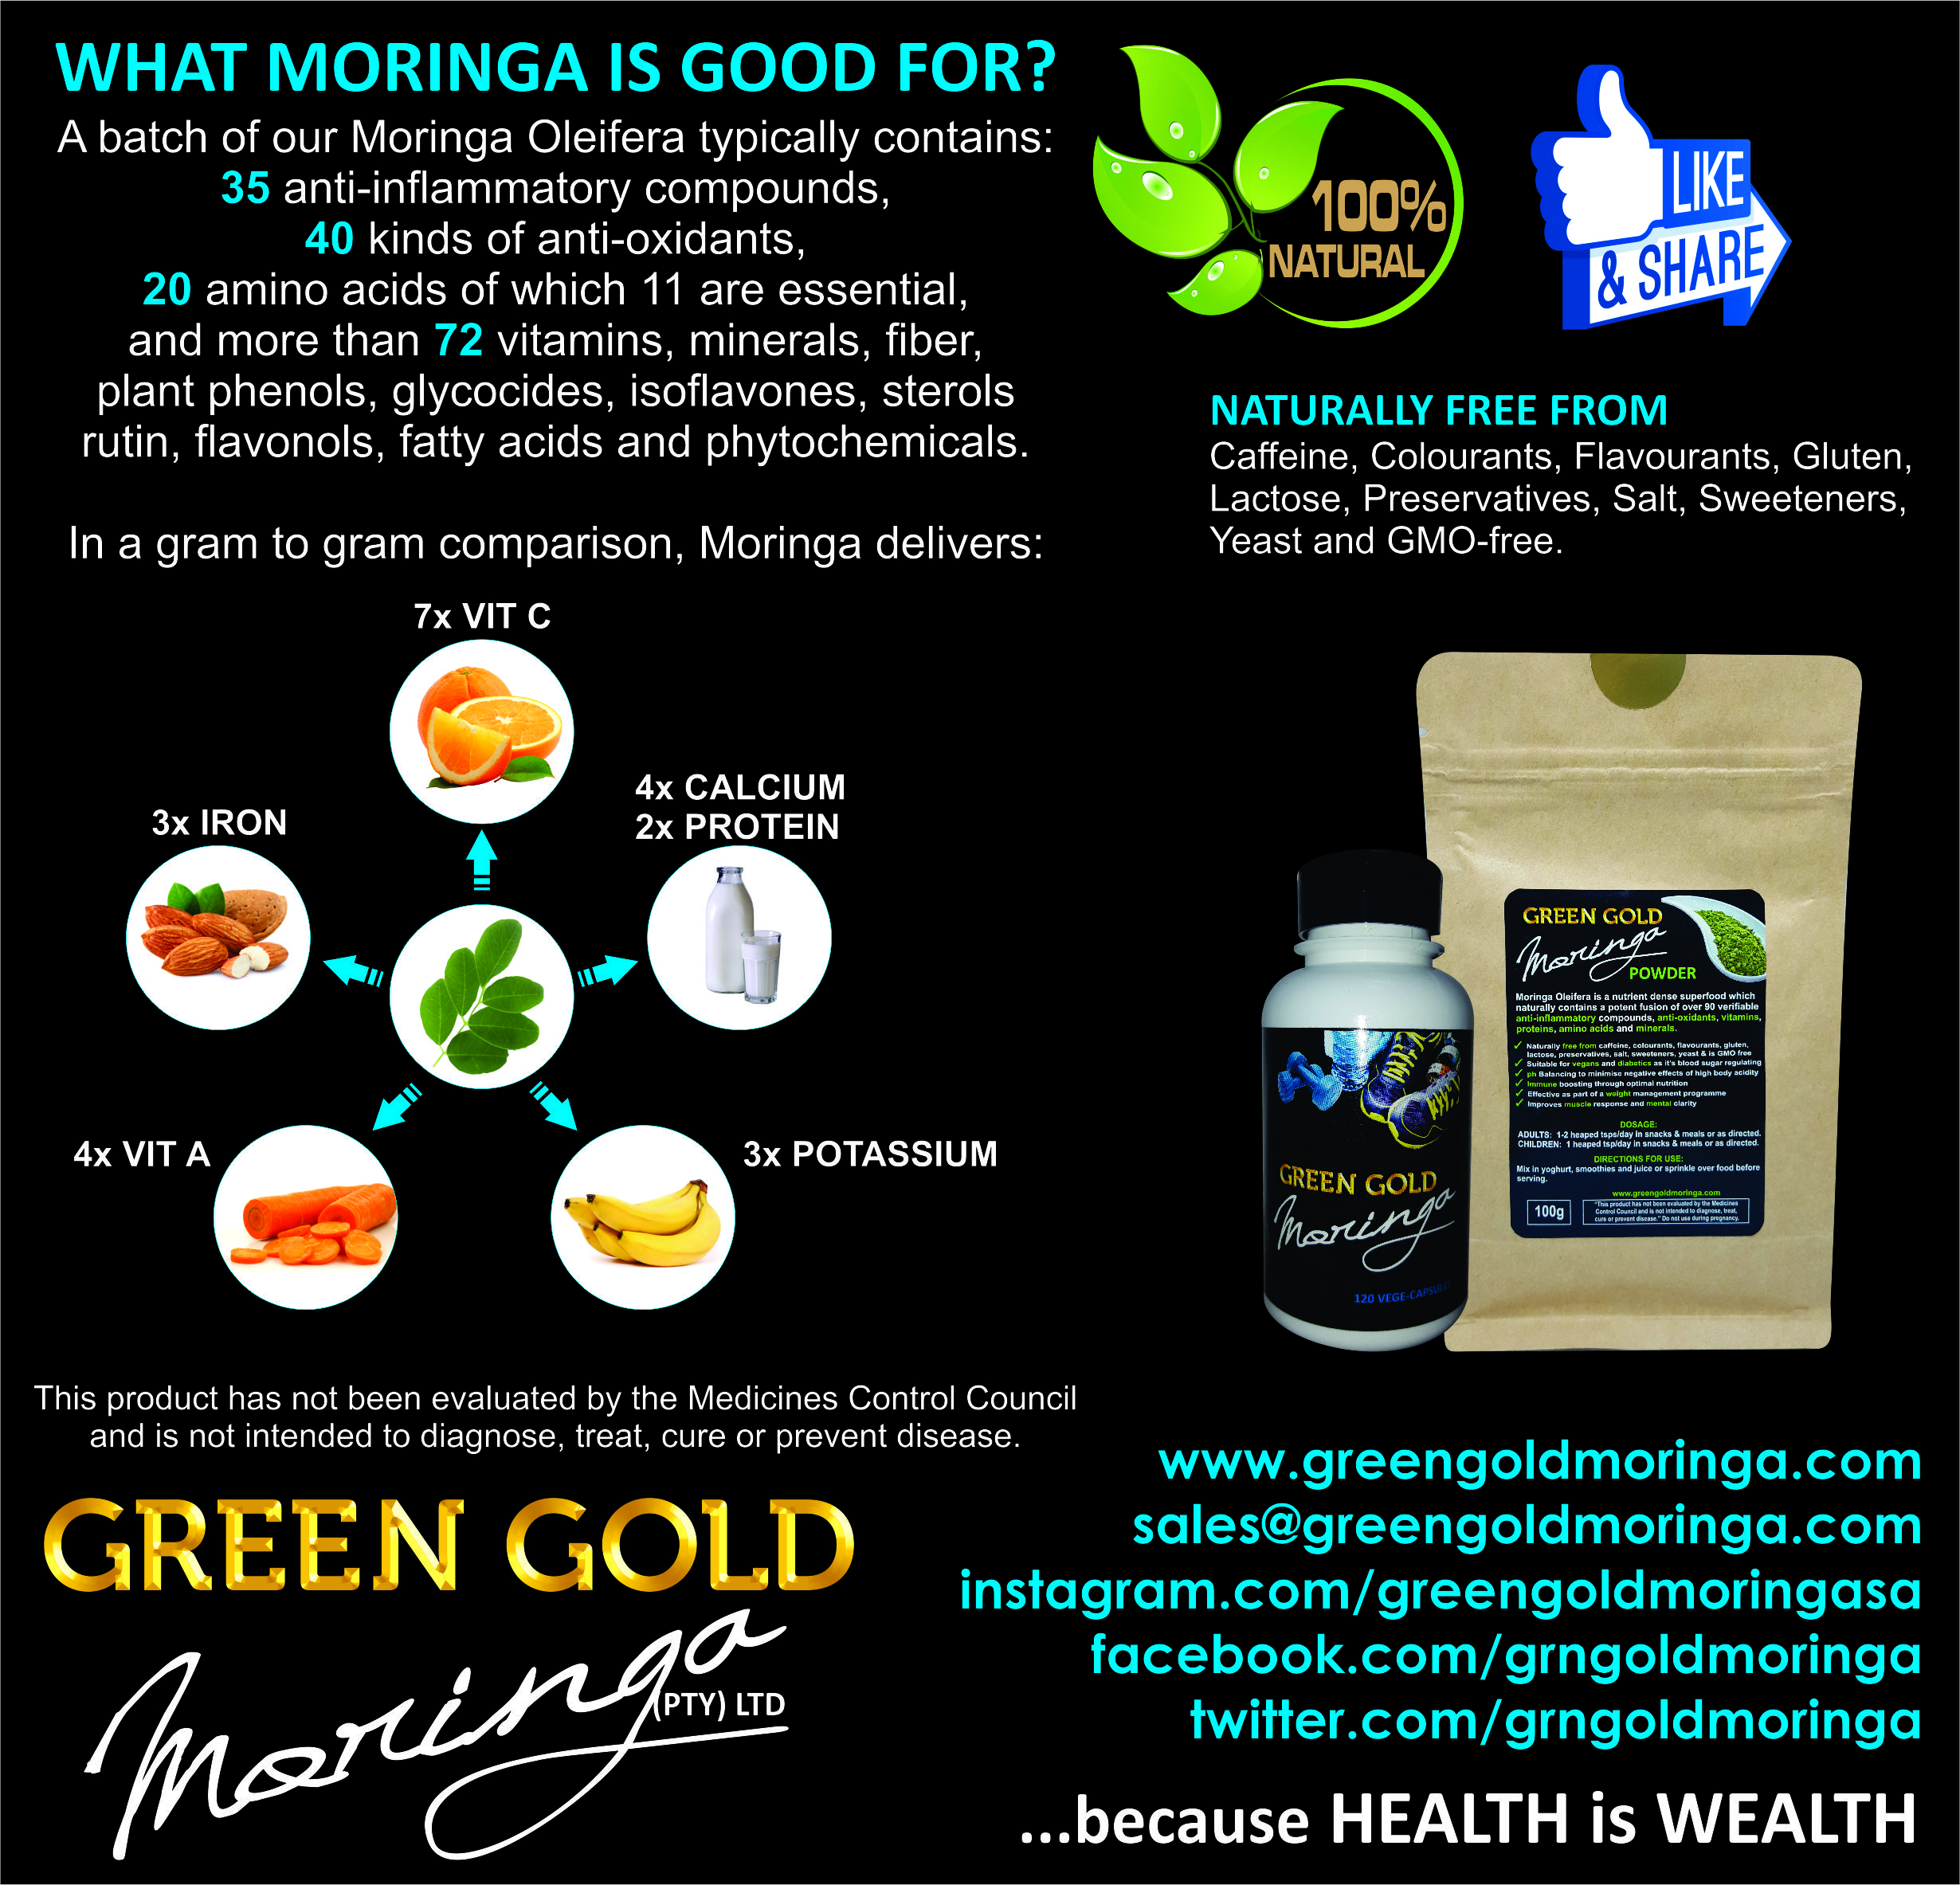 WHAT IS MORINGA GOOD FOR? JUST A REMINDER…